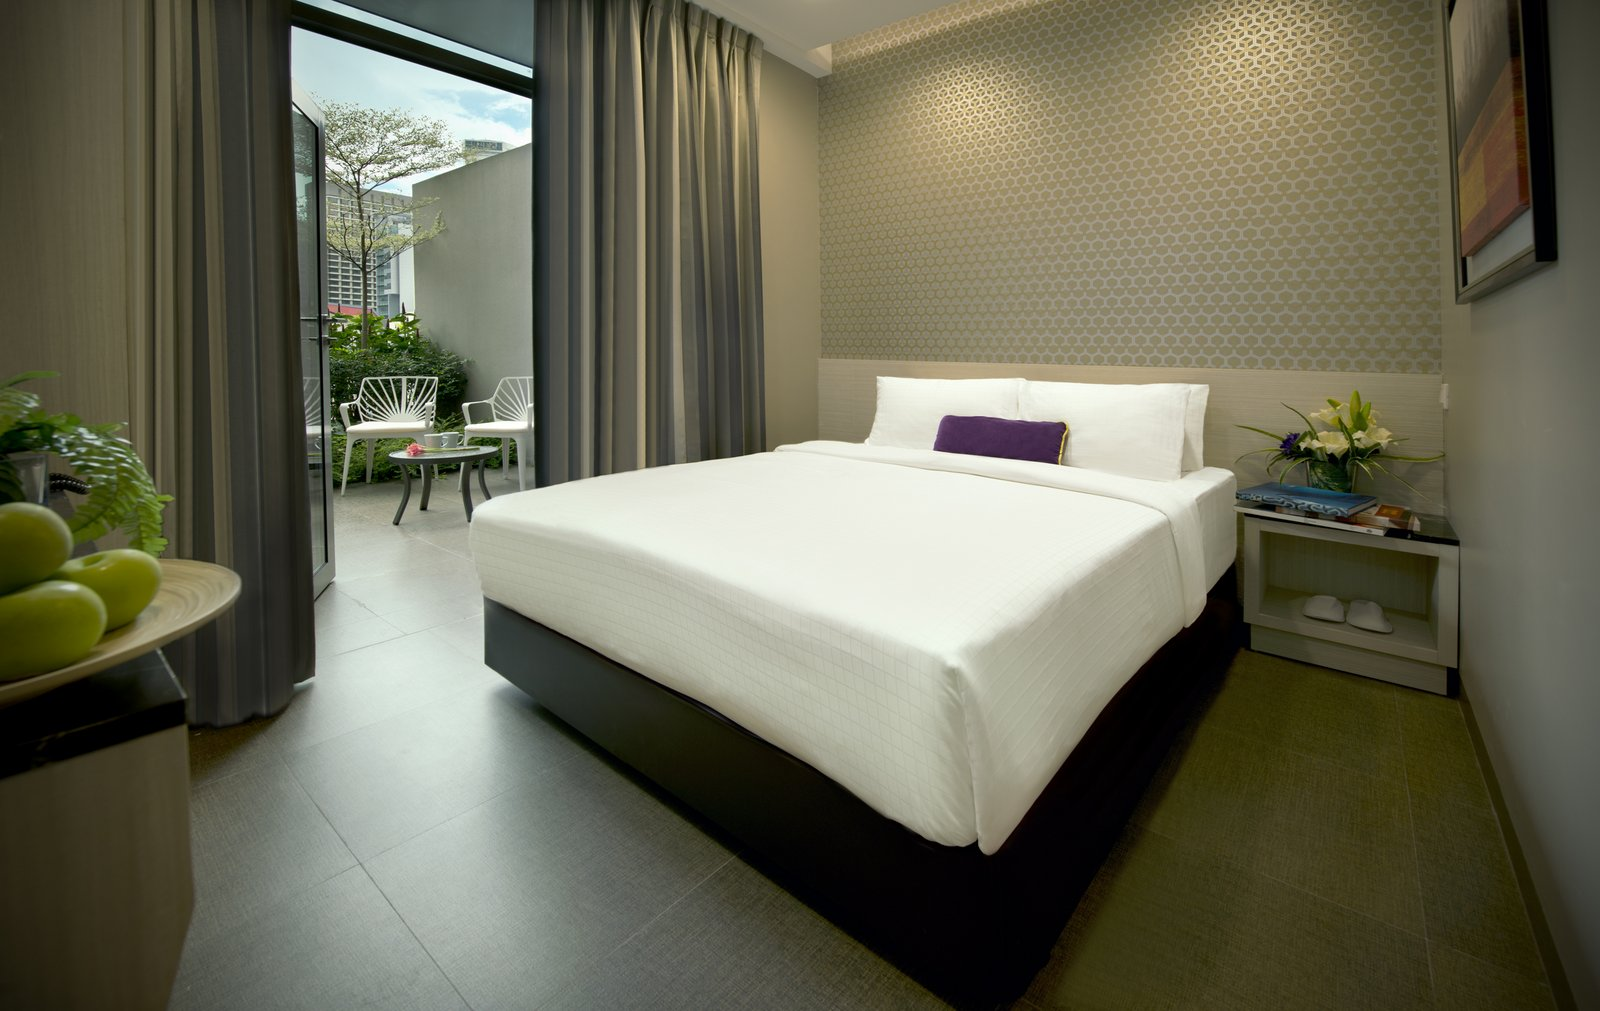 Agoda Hotel Deals For 2014 Singapore Formula 1 Race 19 21